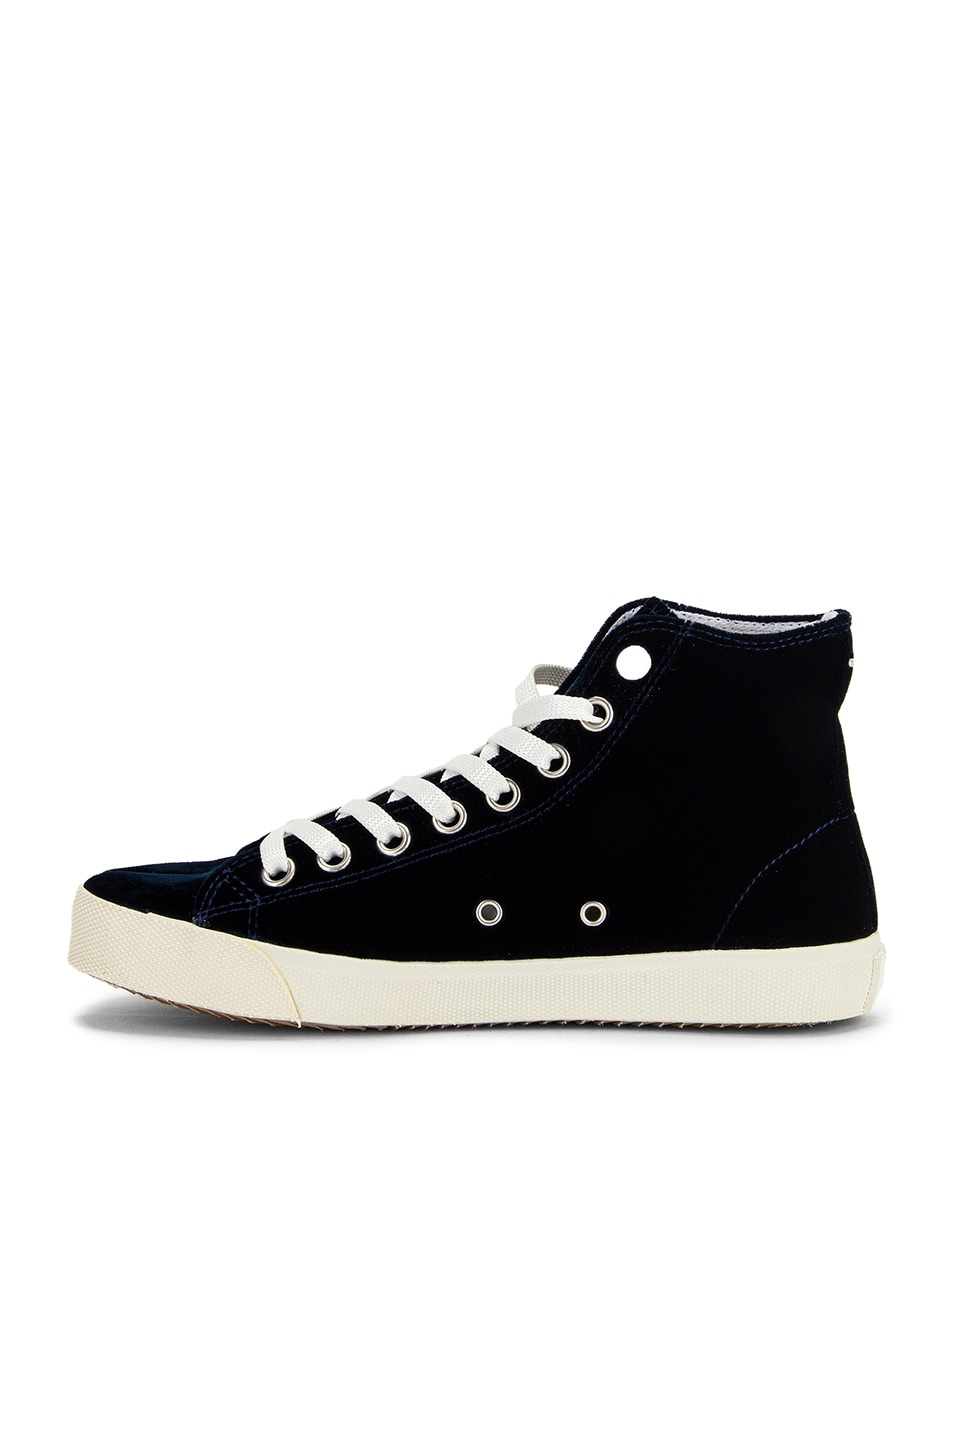 Image 5 of Maison Margiela Toe High Top Sneakers in Navy Blue